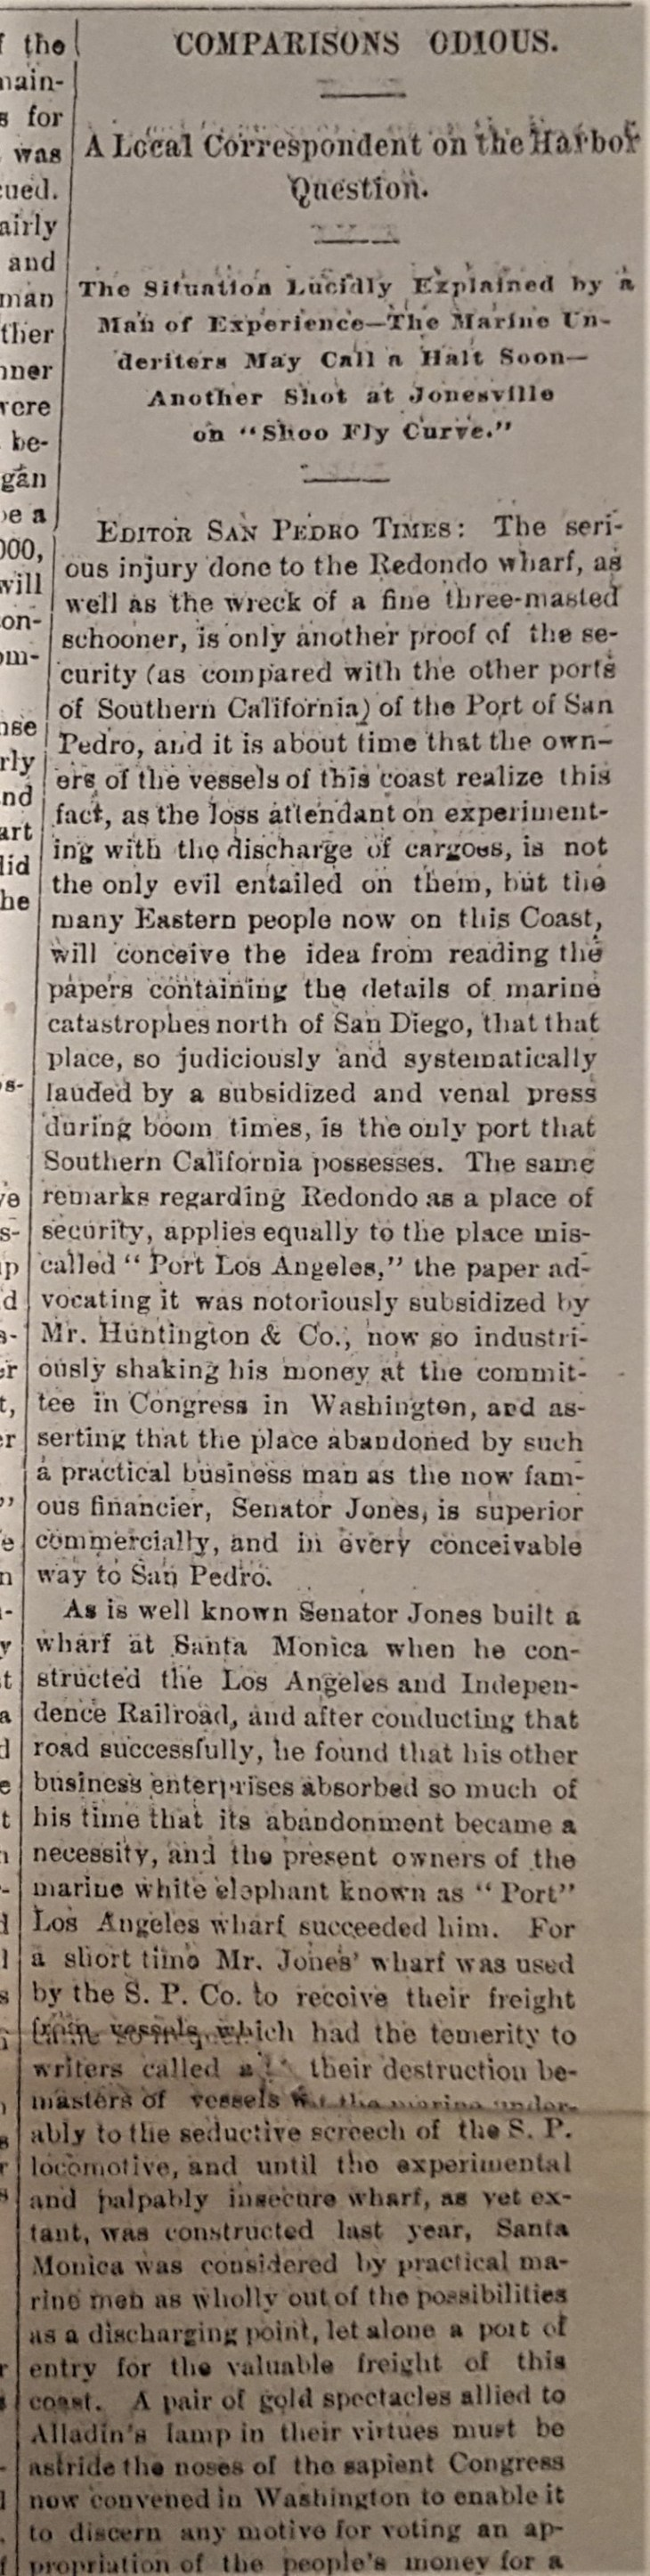 San Pedro Times Comparisons Odious.jpg